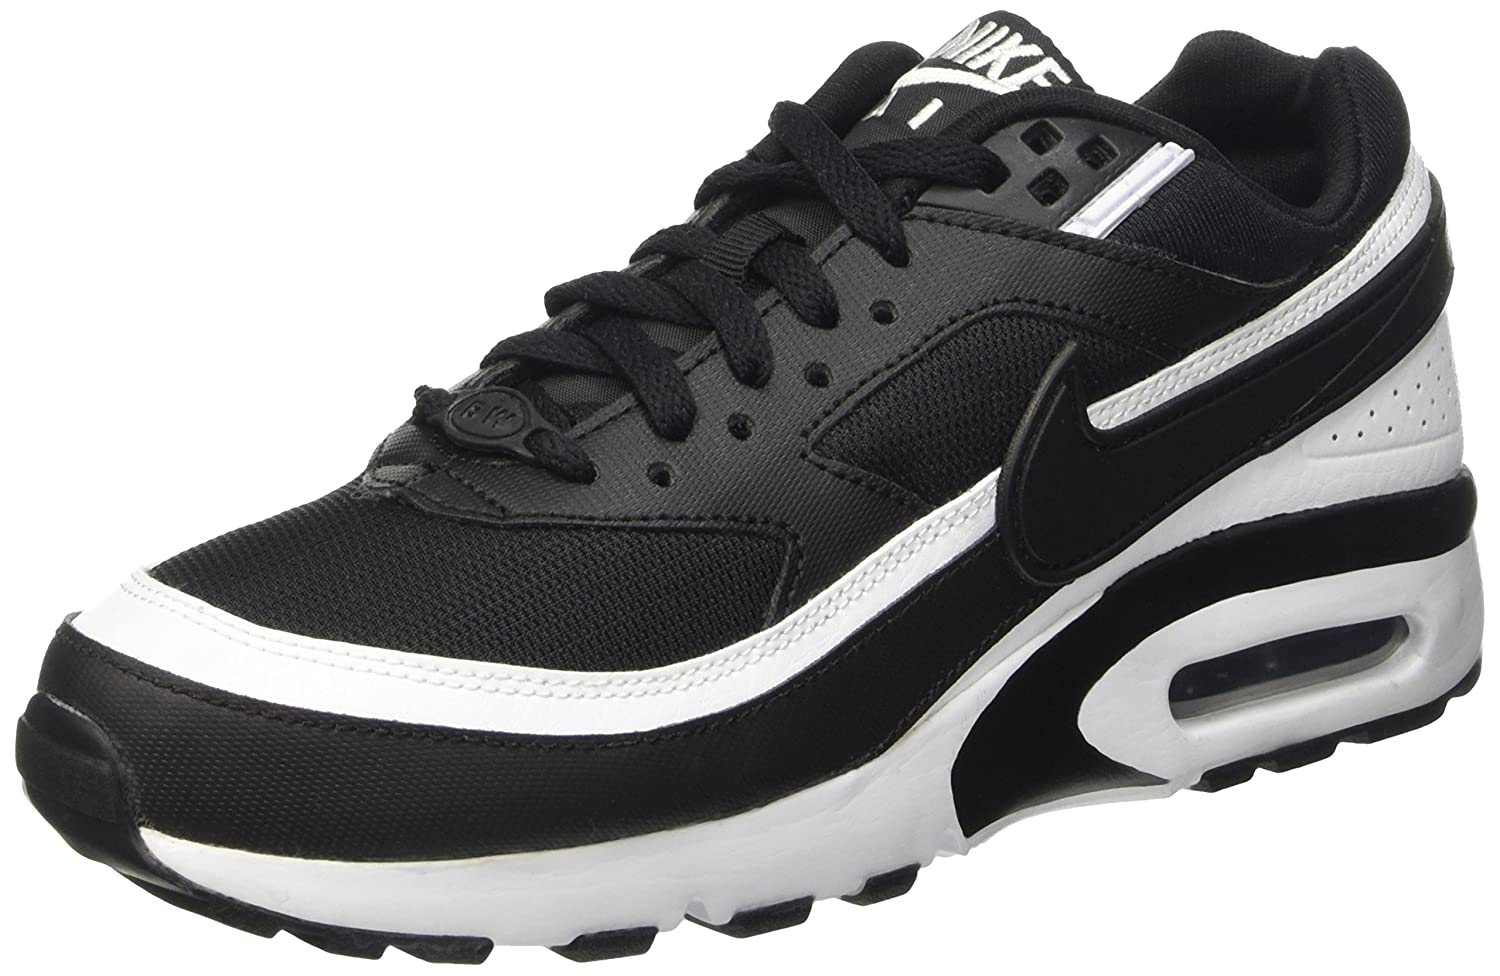 Nike Air Max BW (GS) 820344 001 Sneakers: : Sport